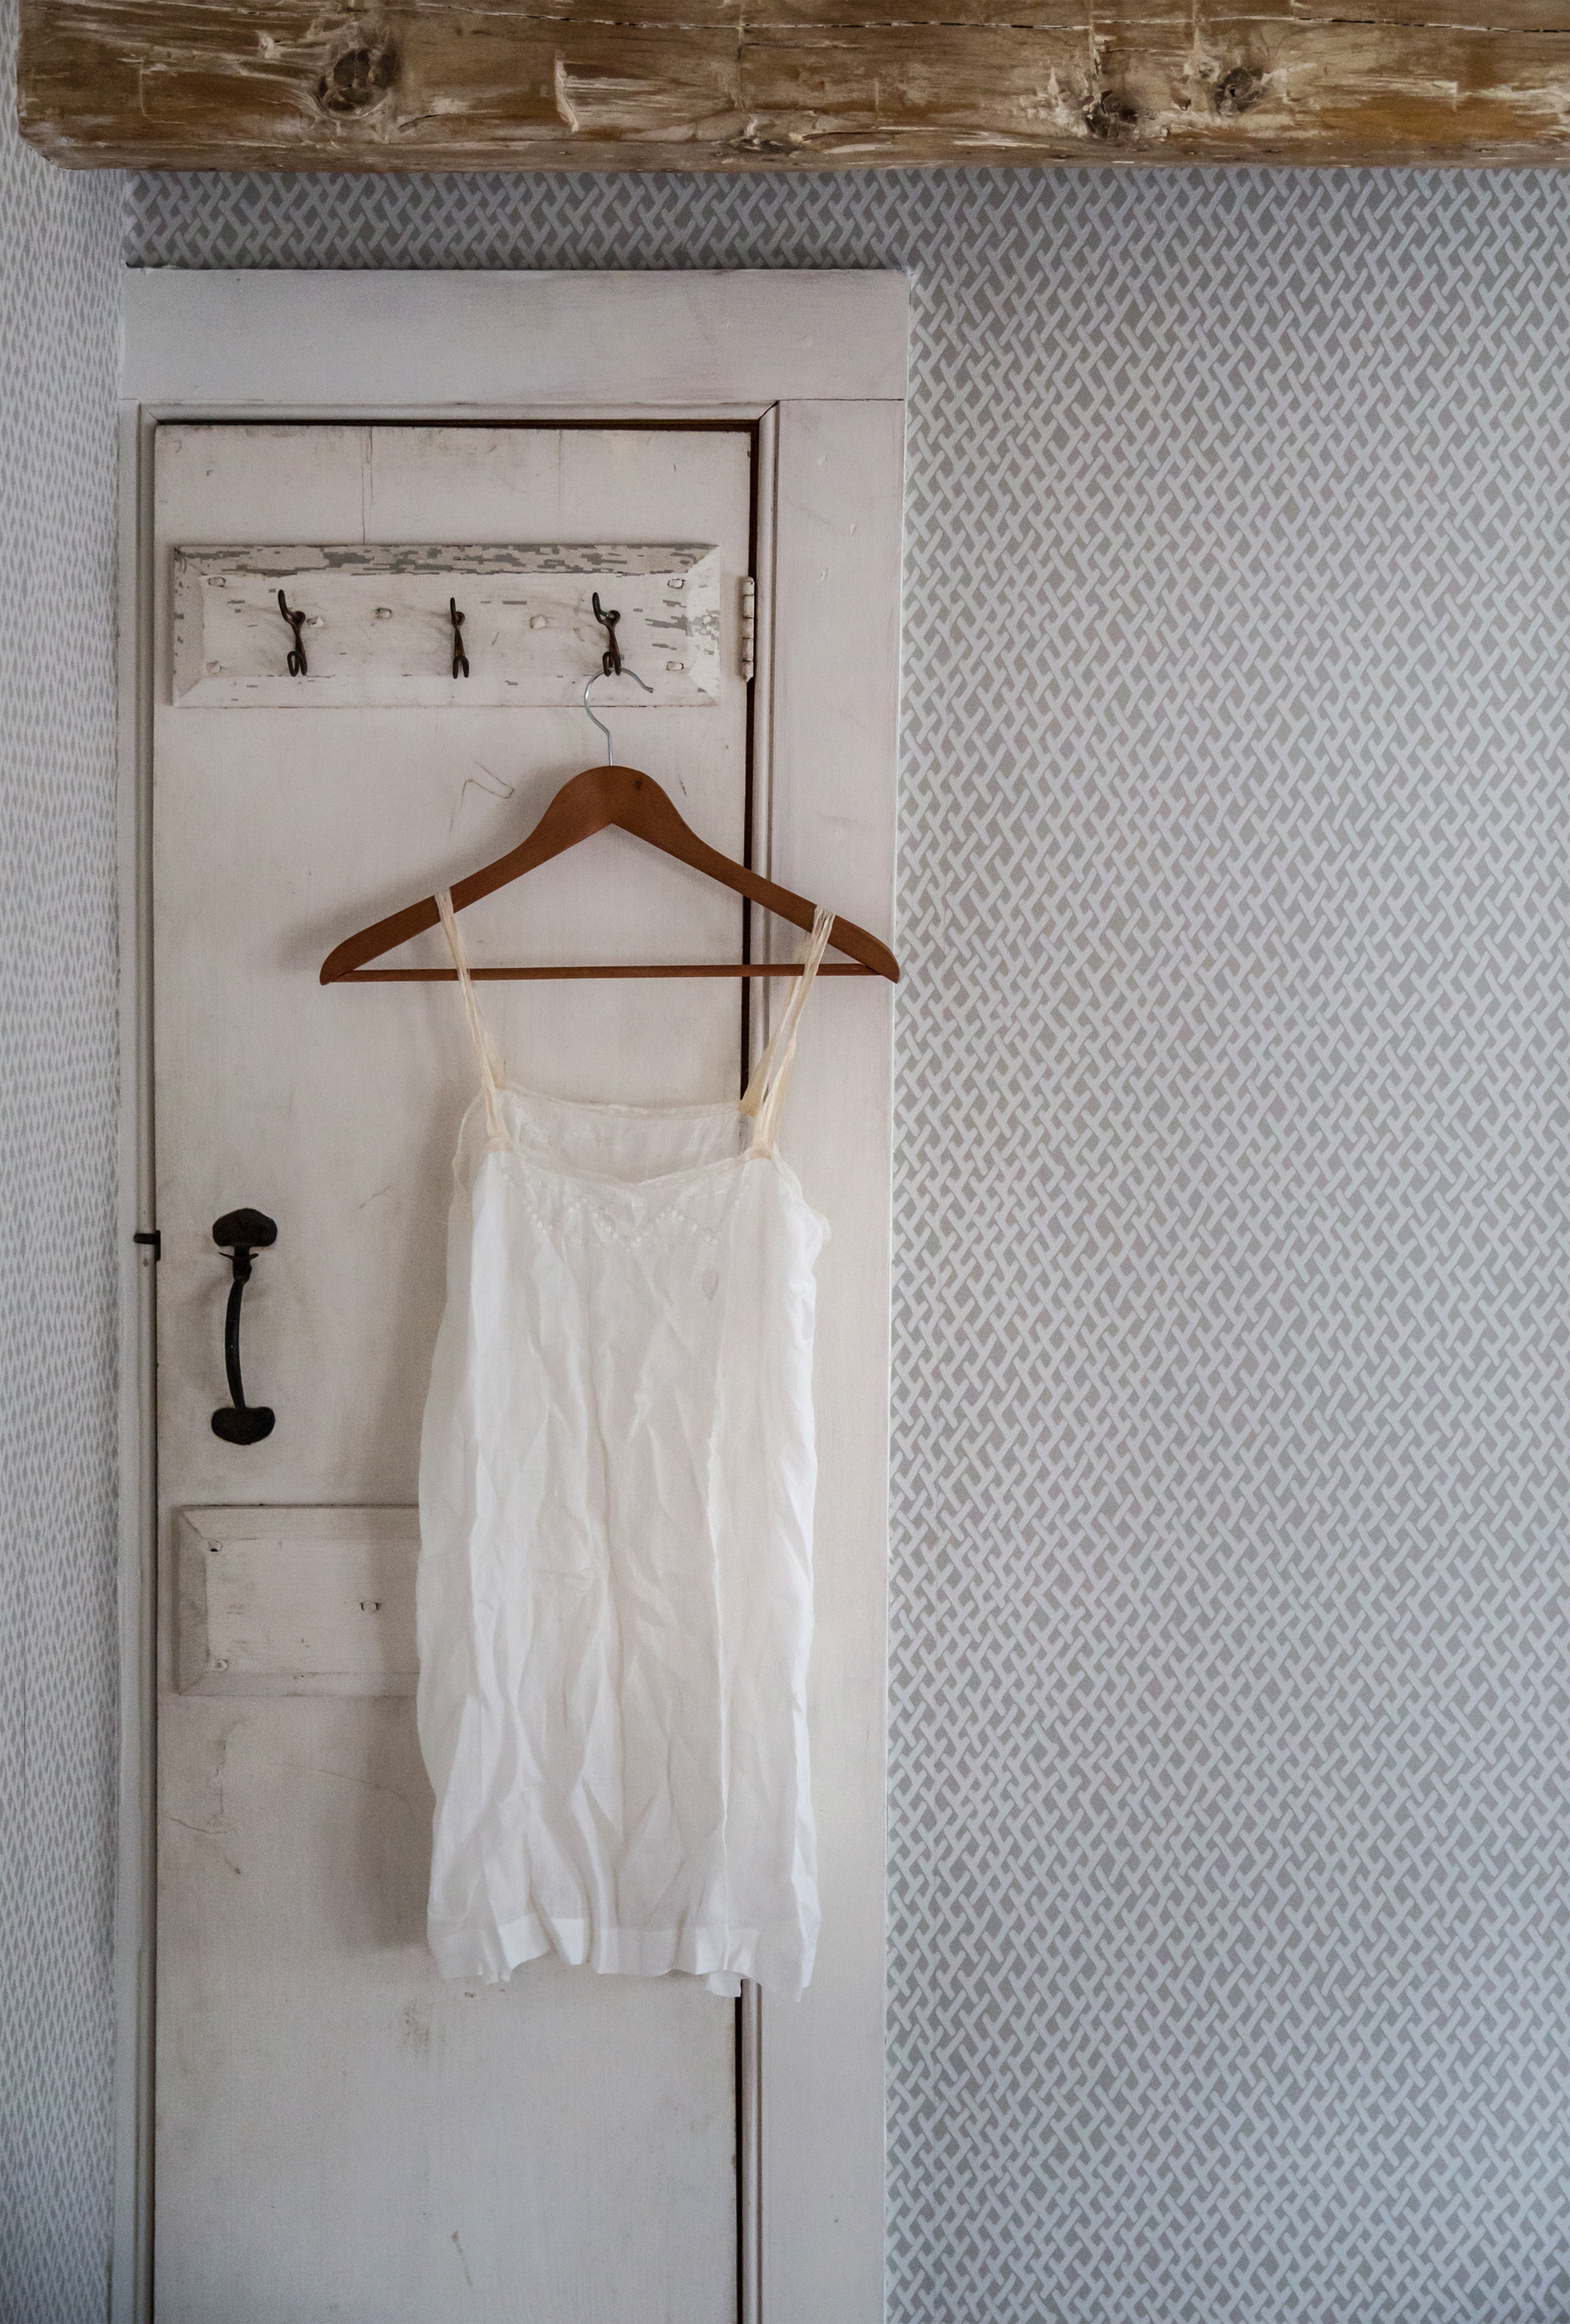 Jersey-Ice-Cream-Co-Old-Chatham-Hose-Remodelista-door